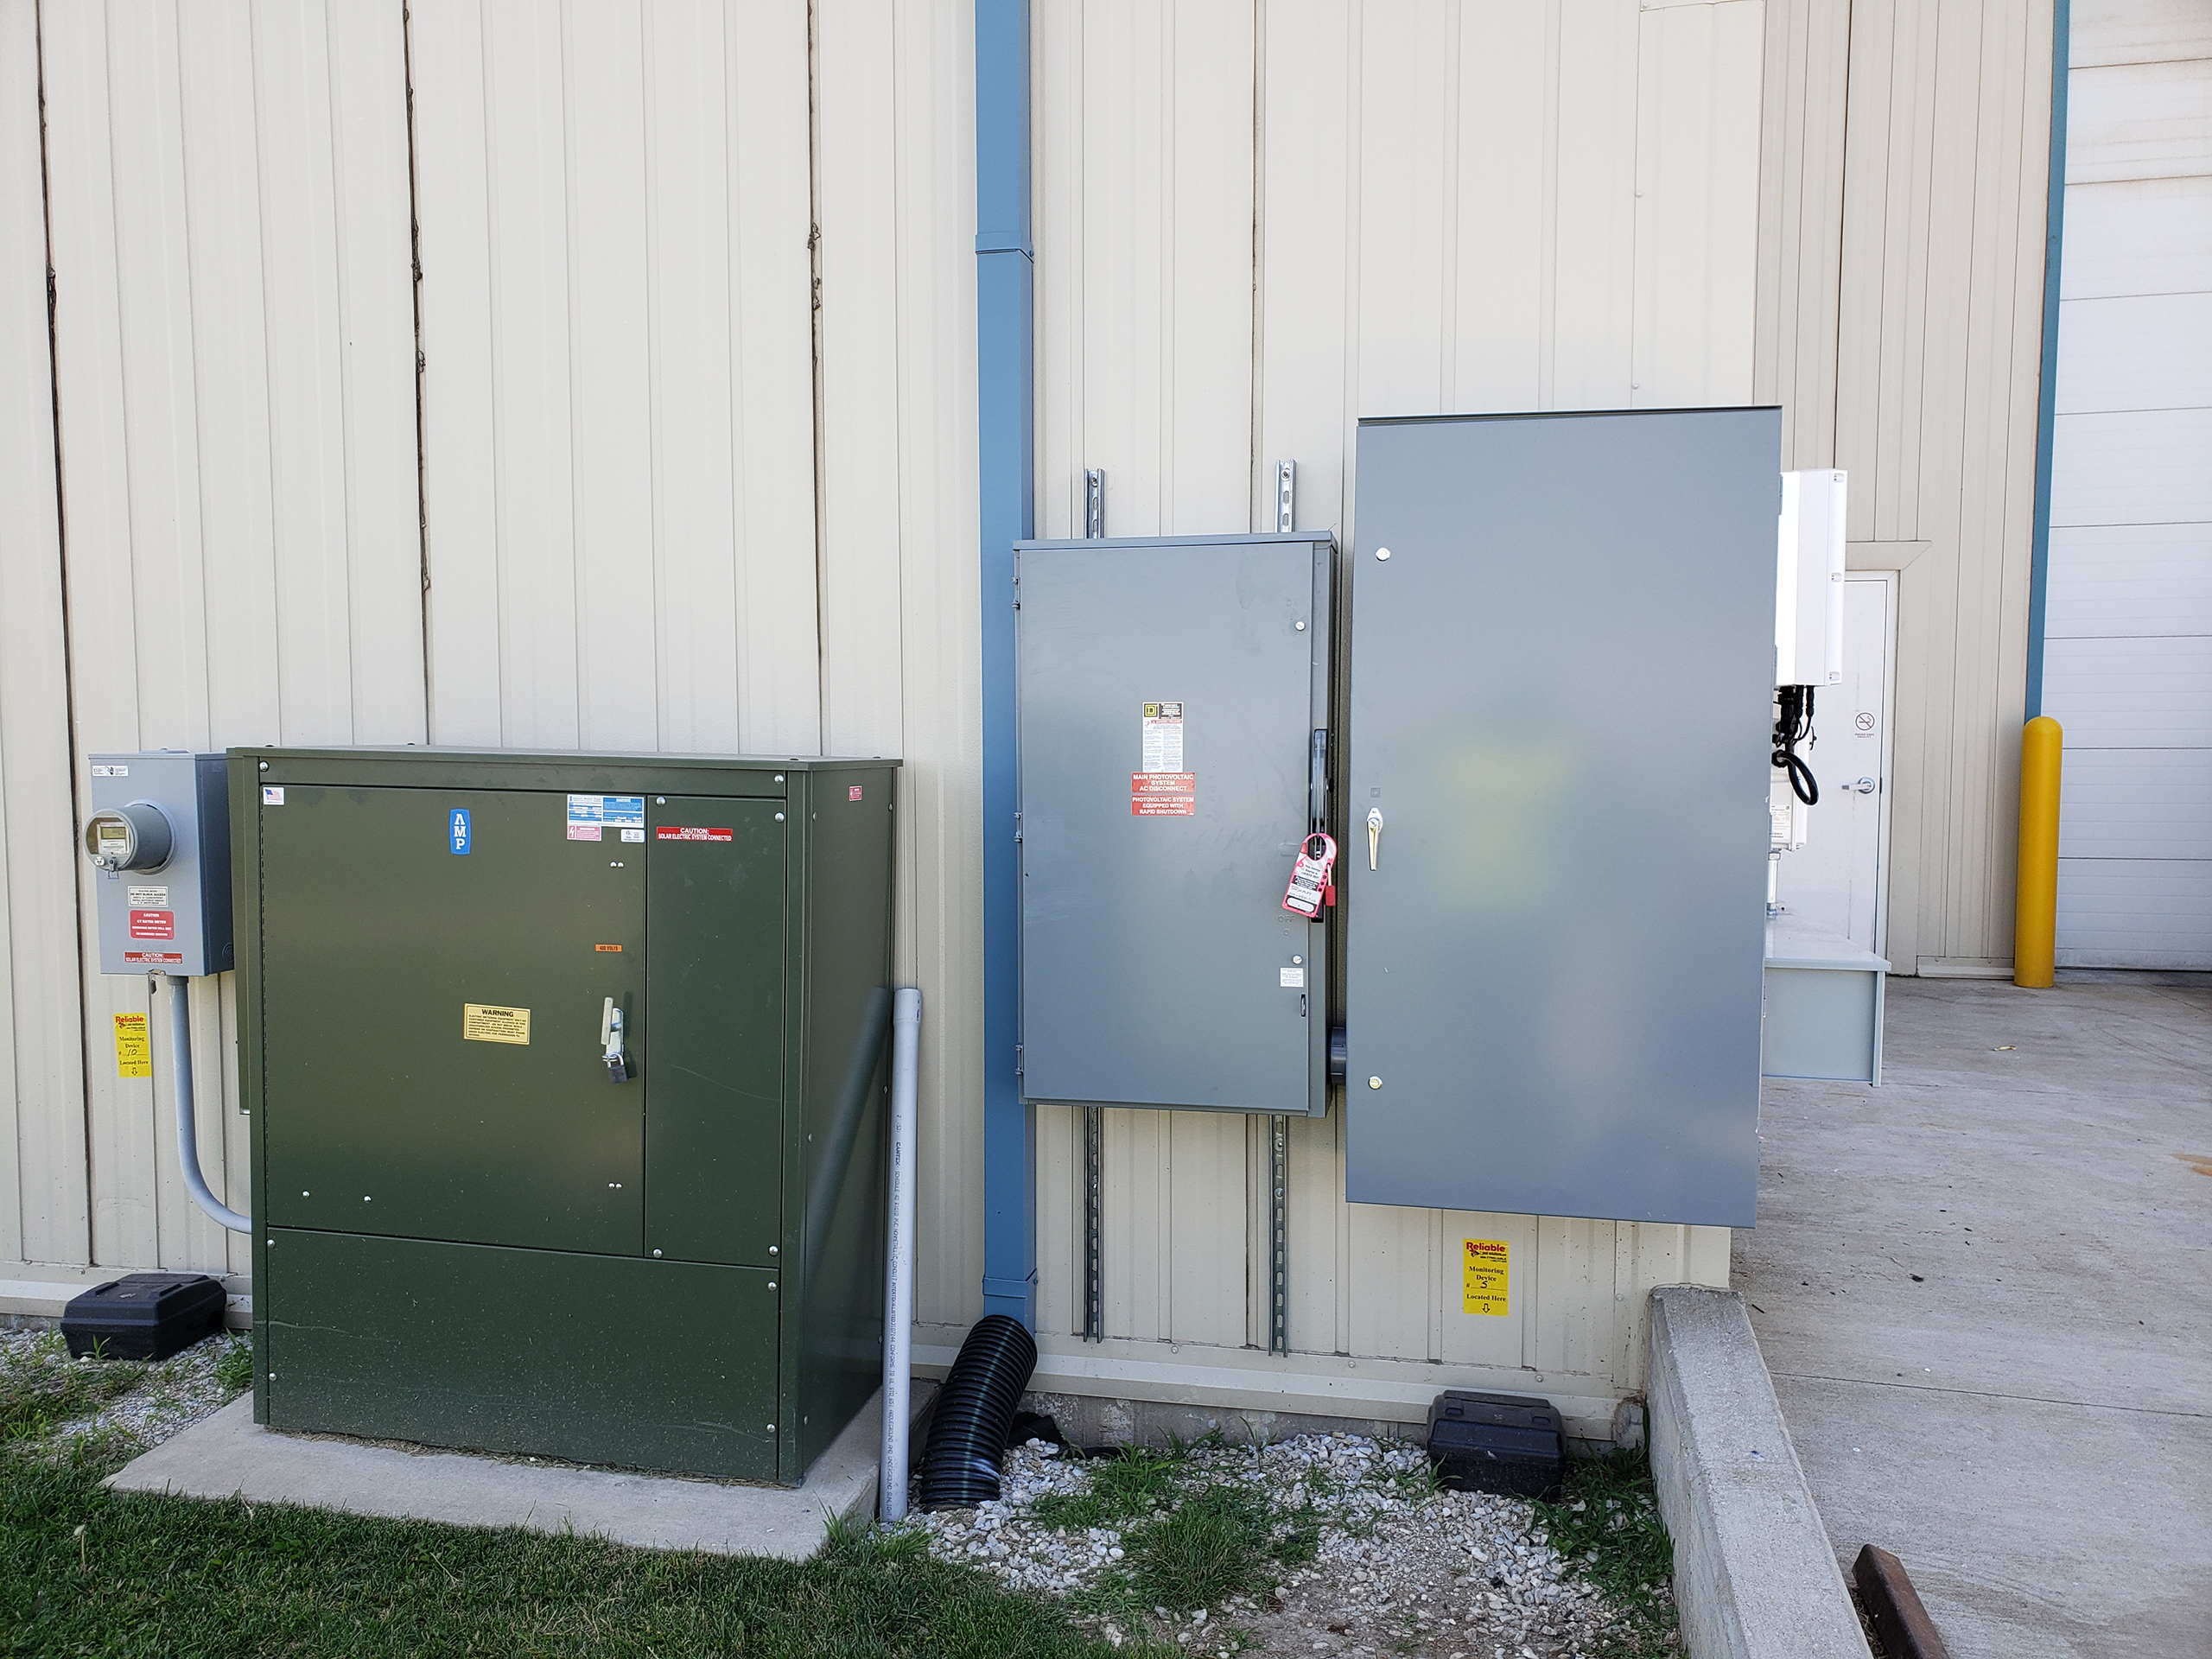 The corner of a commercial building has neatly lined up electrical boxes where the solar system connects.